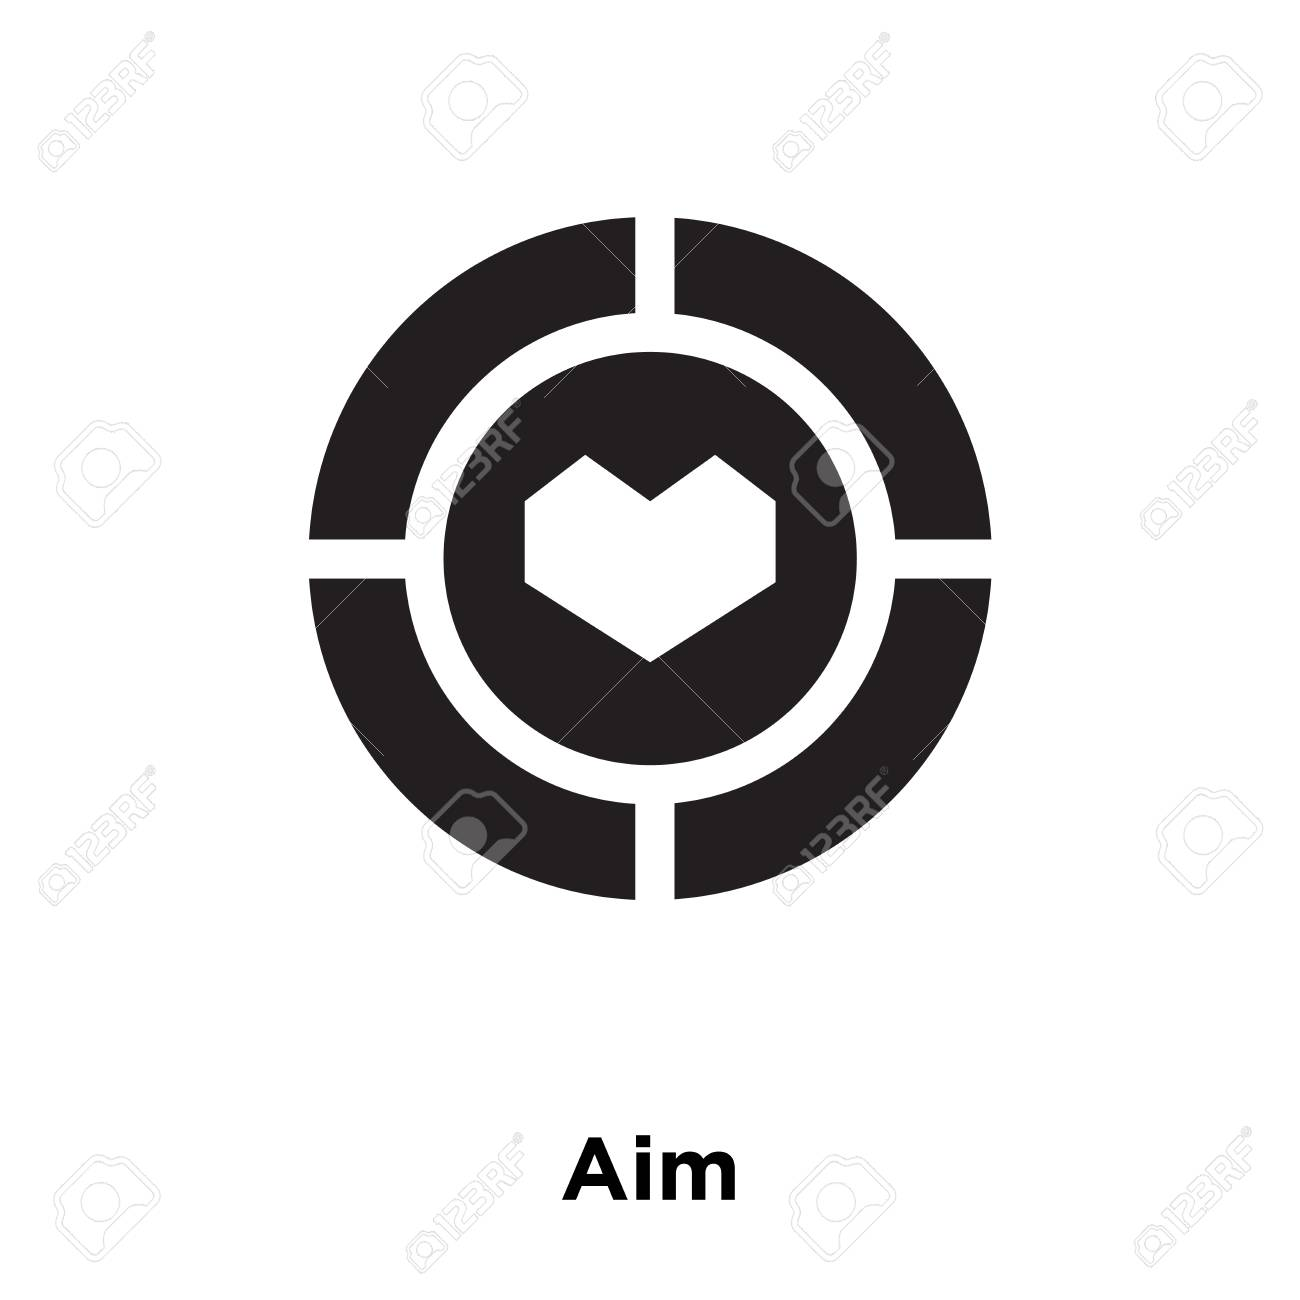 aim icon vector isolated on white background logo concept of royalty free cliparts vectors and stock illustration image 112627339 aim icon vector isolated on white background logo concept of